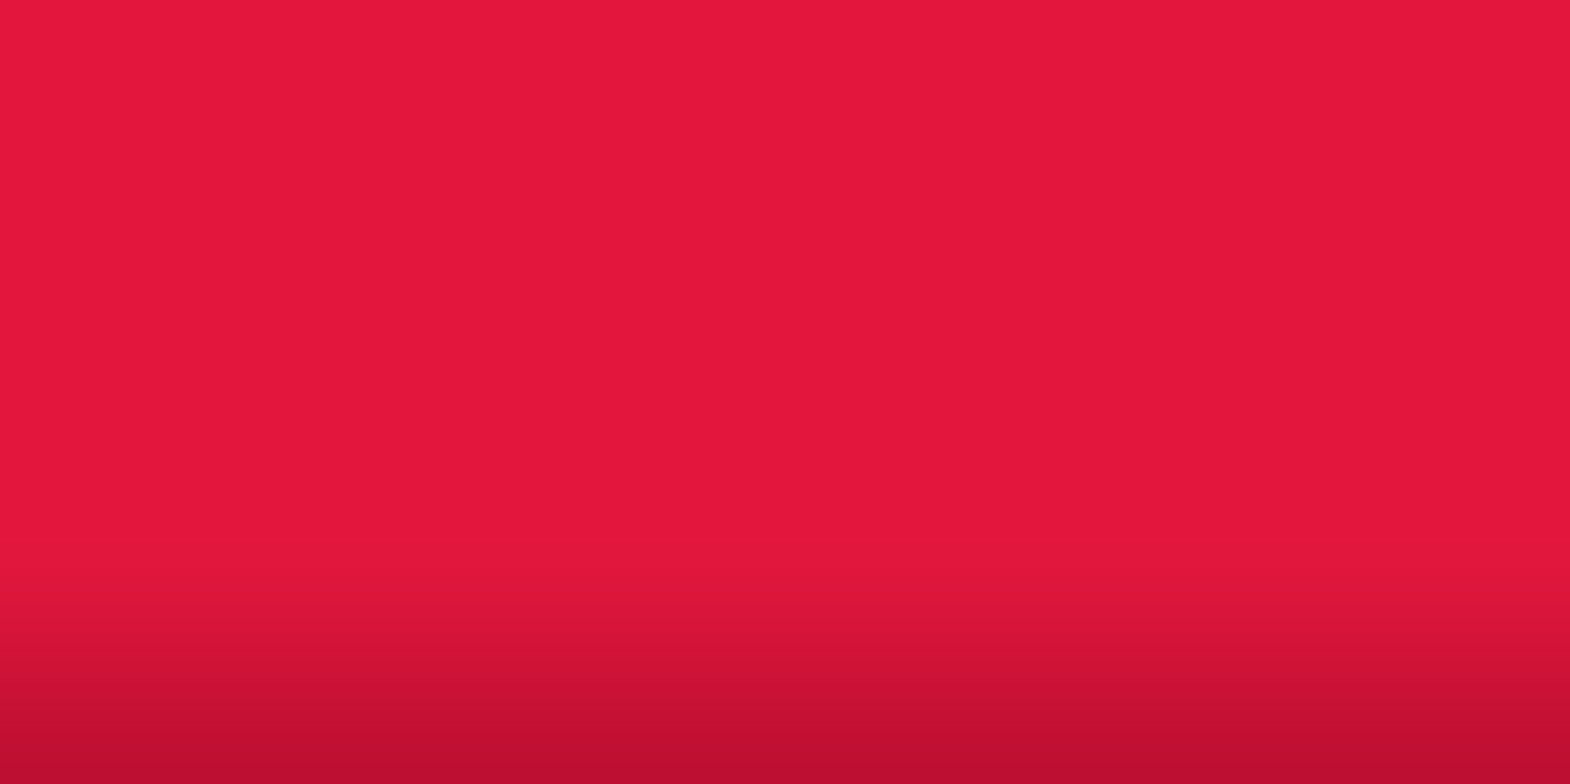 red color background hd - photo #9